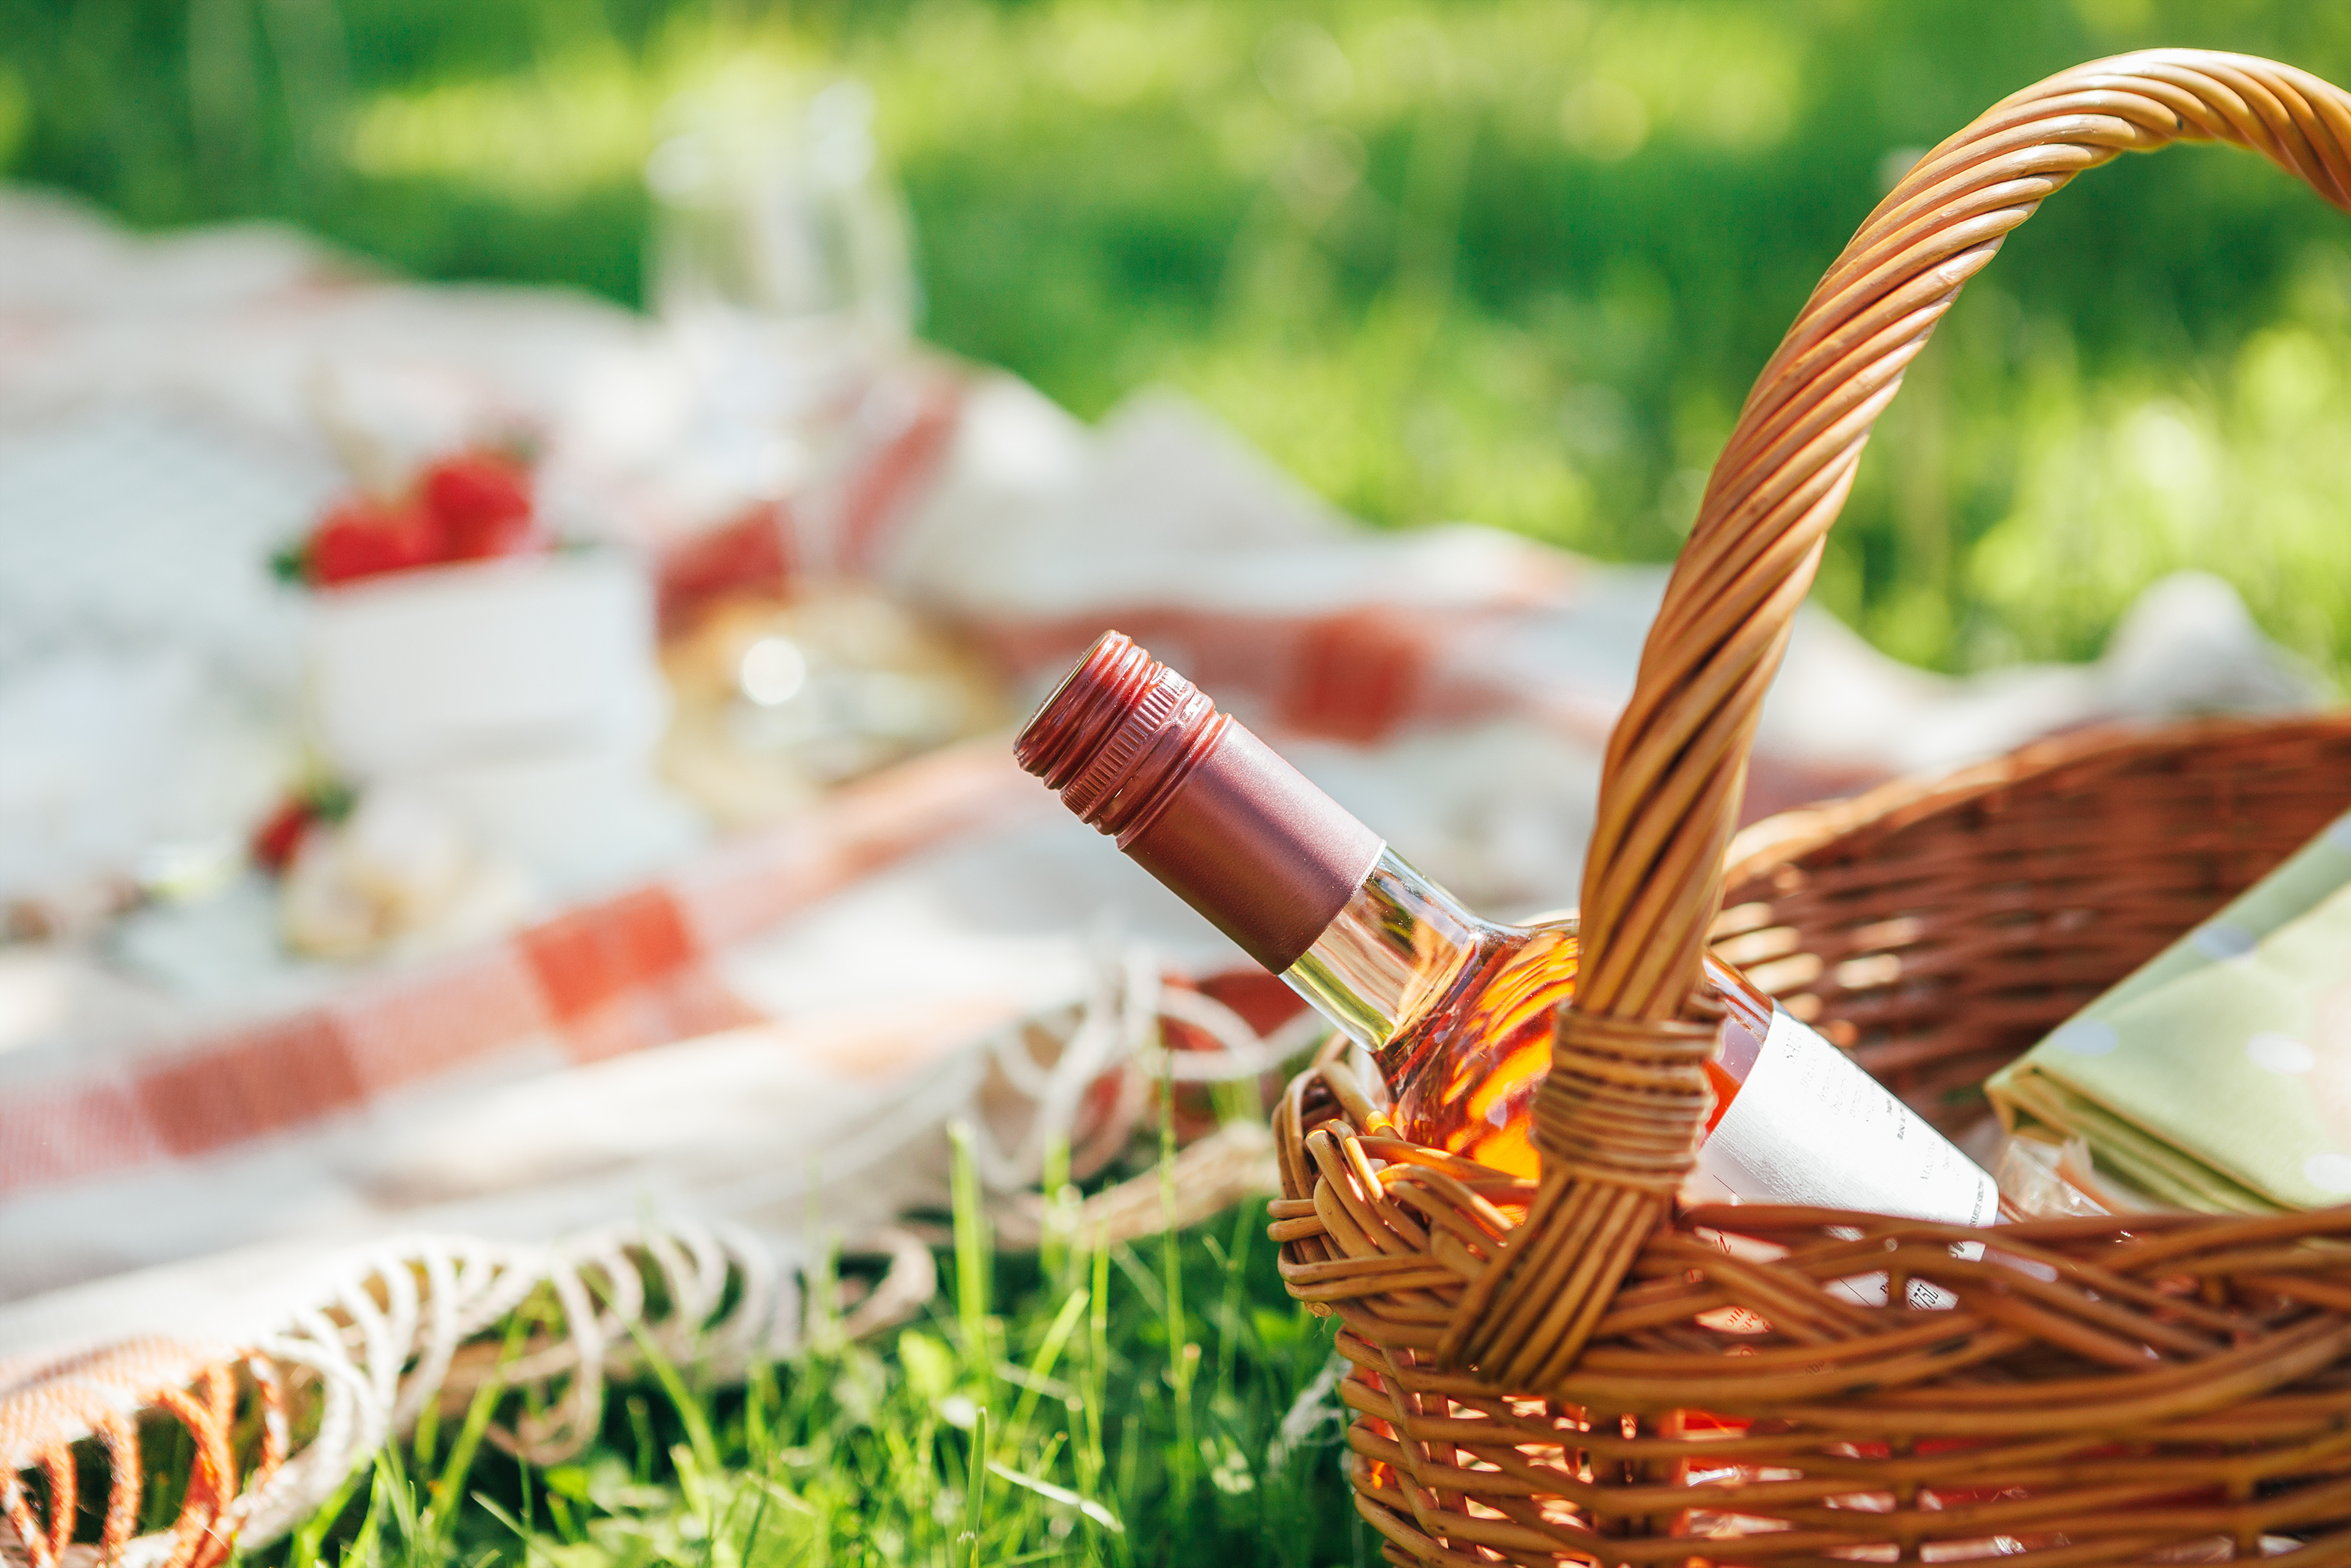 A picnic basket with bottle of rose wine and a checked blanket on the grass with food in the background